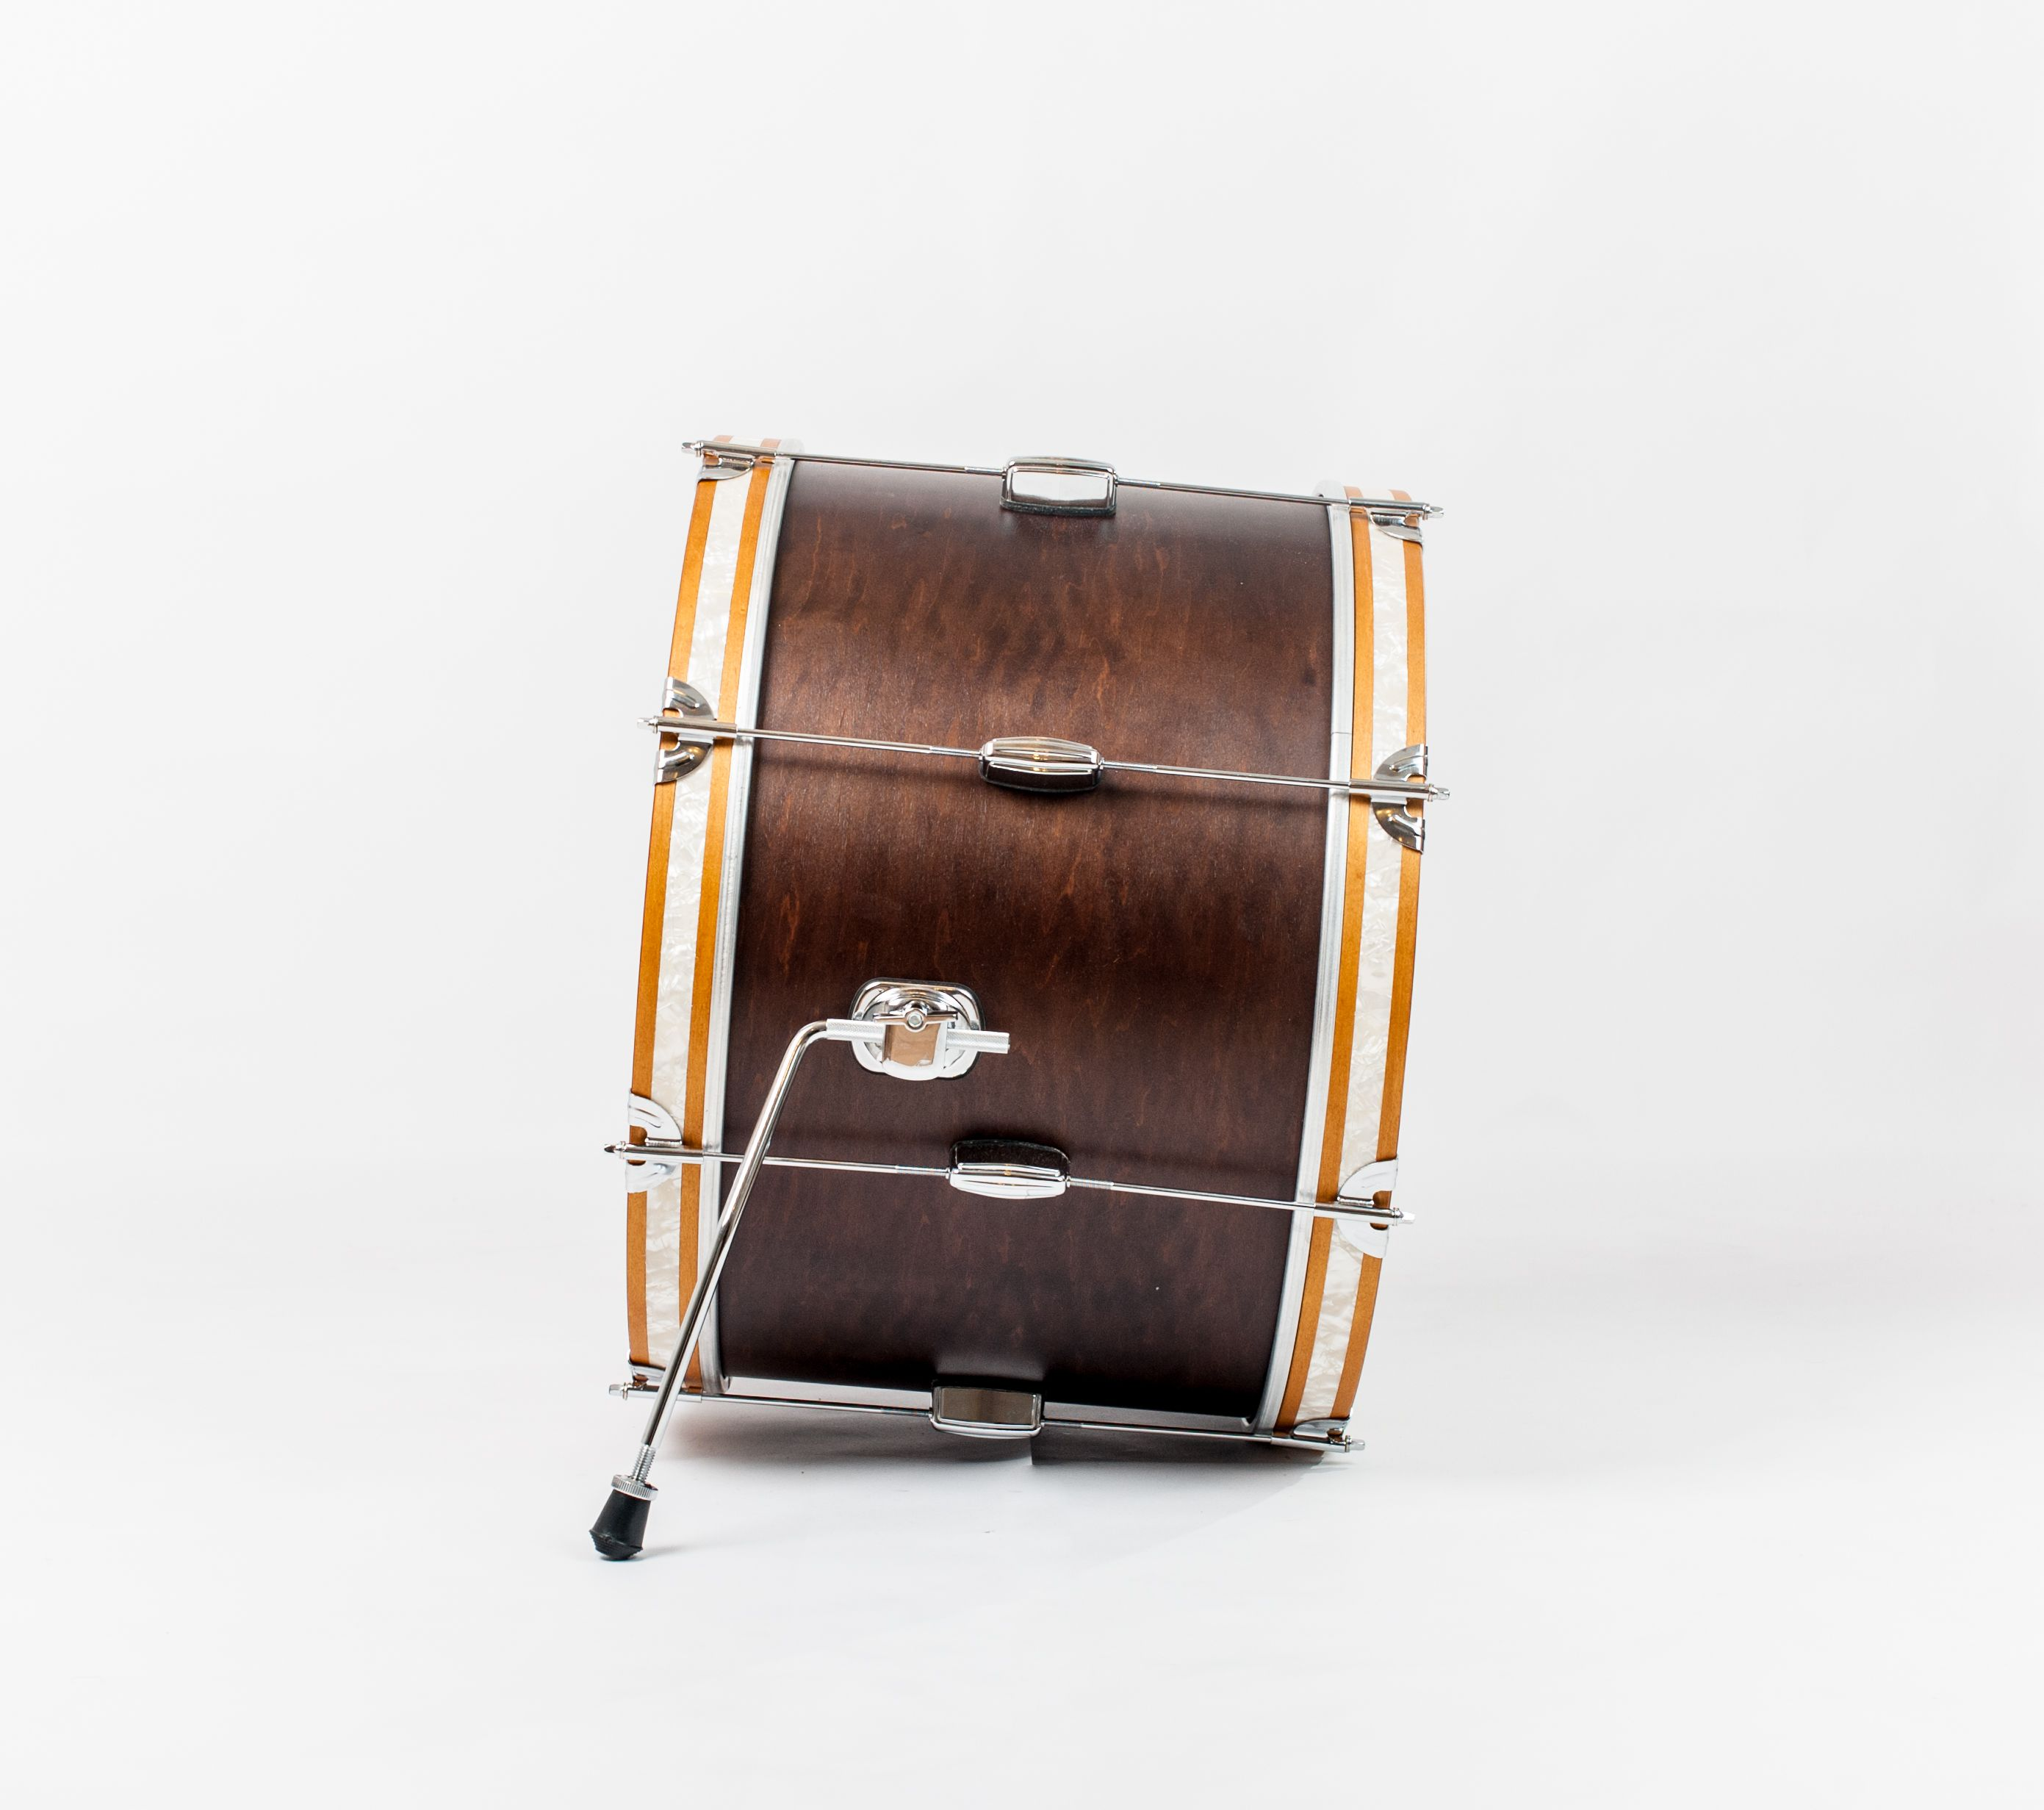 C&C Drums Europe - Vintage Drums - Player Date 2 - Walnut Satin - Bass Drum (side) www.candcdrumseurope.com